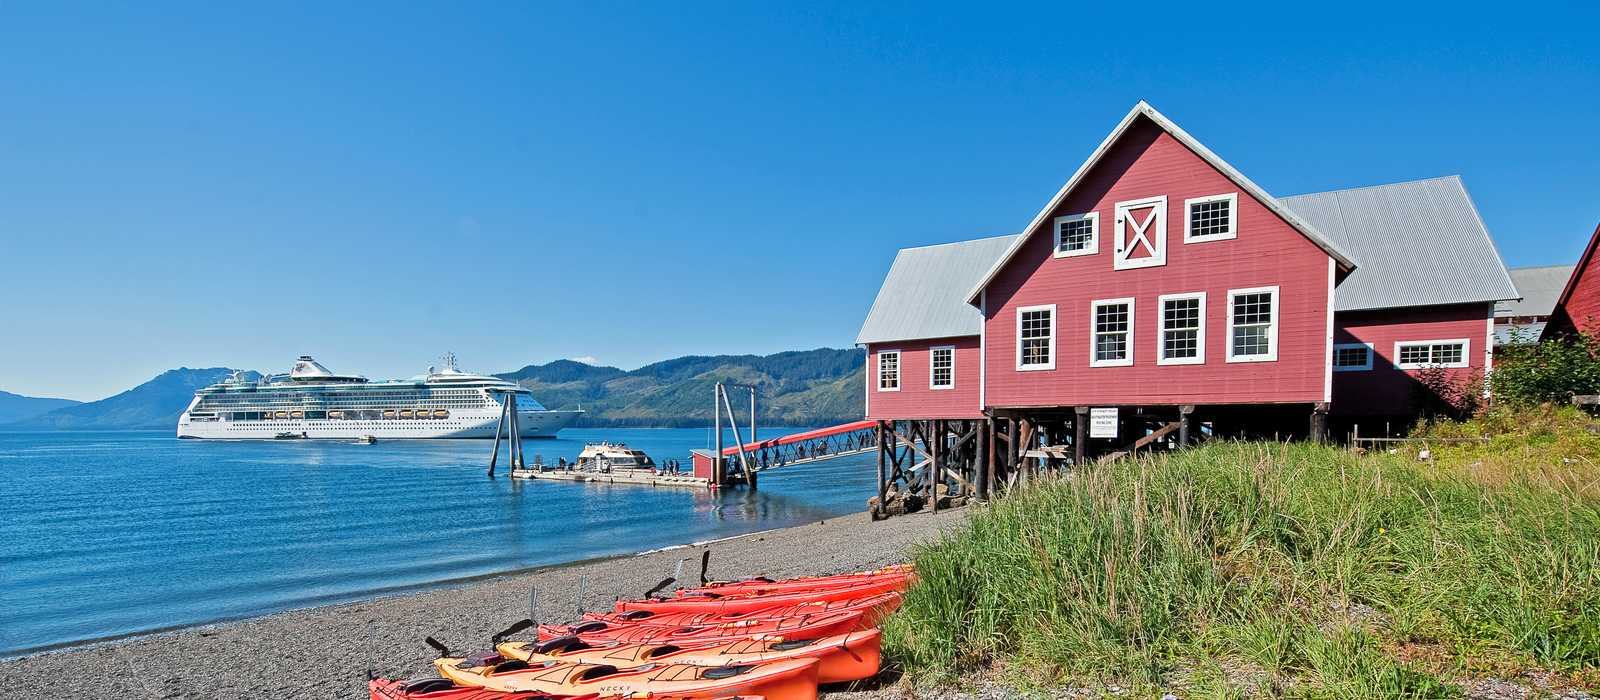 Cannery building in Hoonah am Icy Strait Point